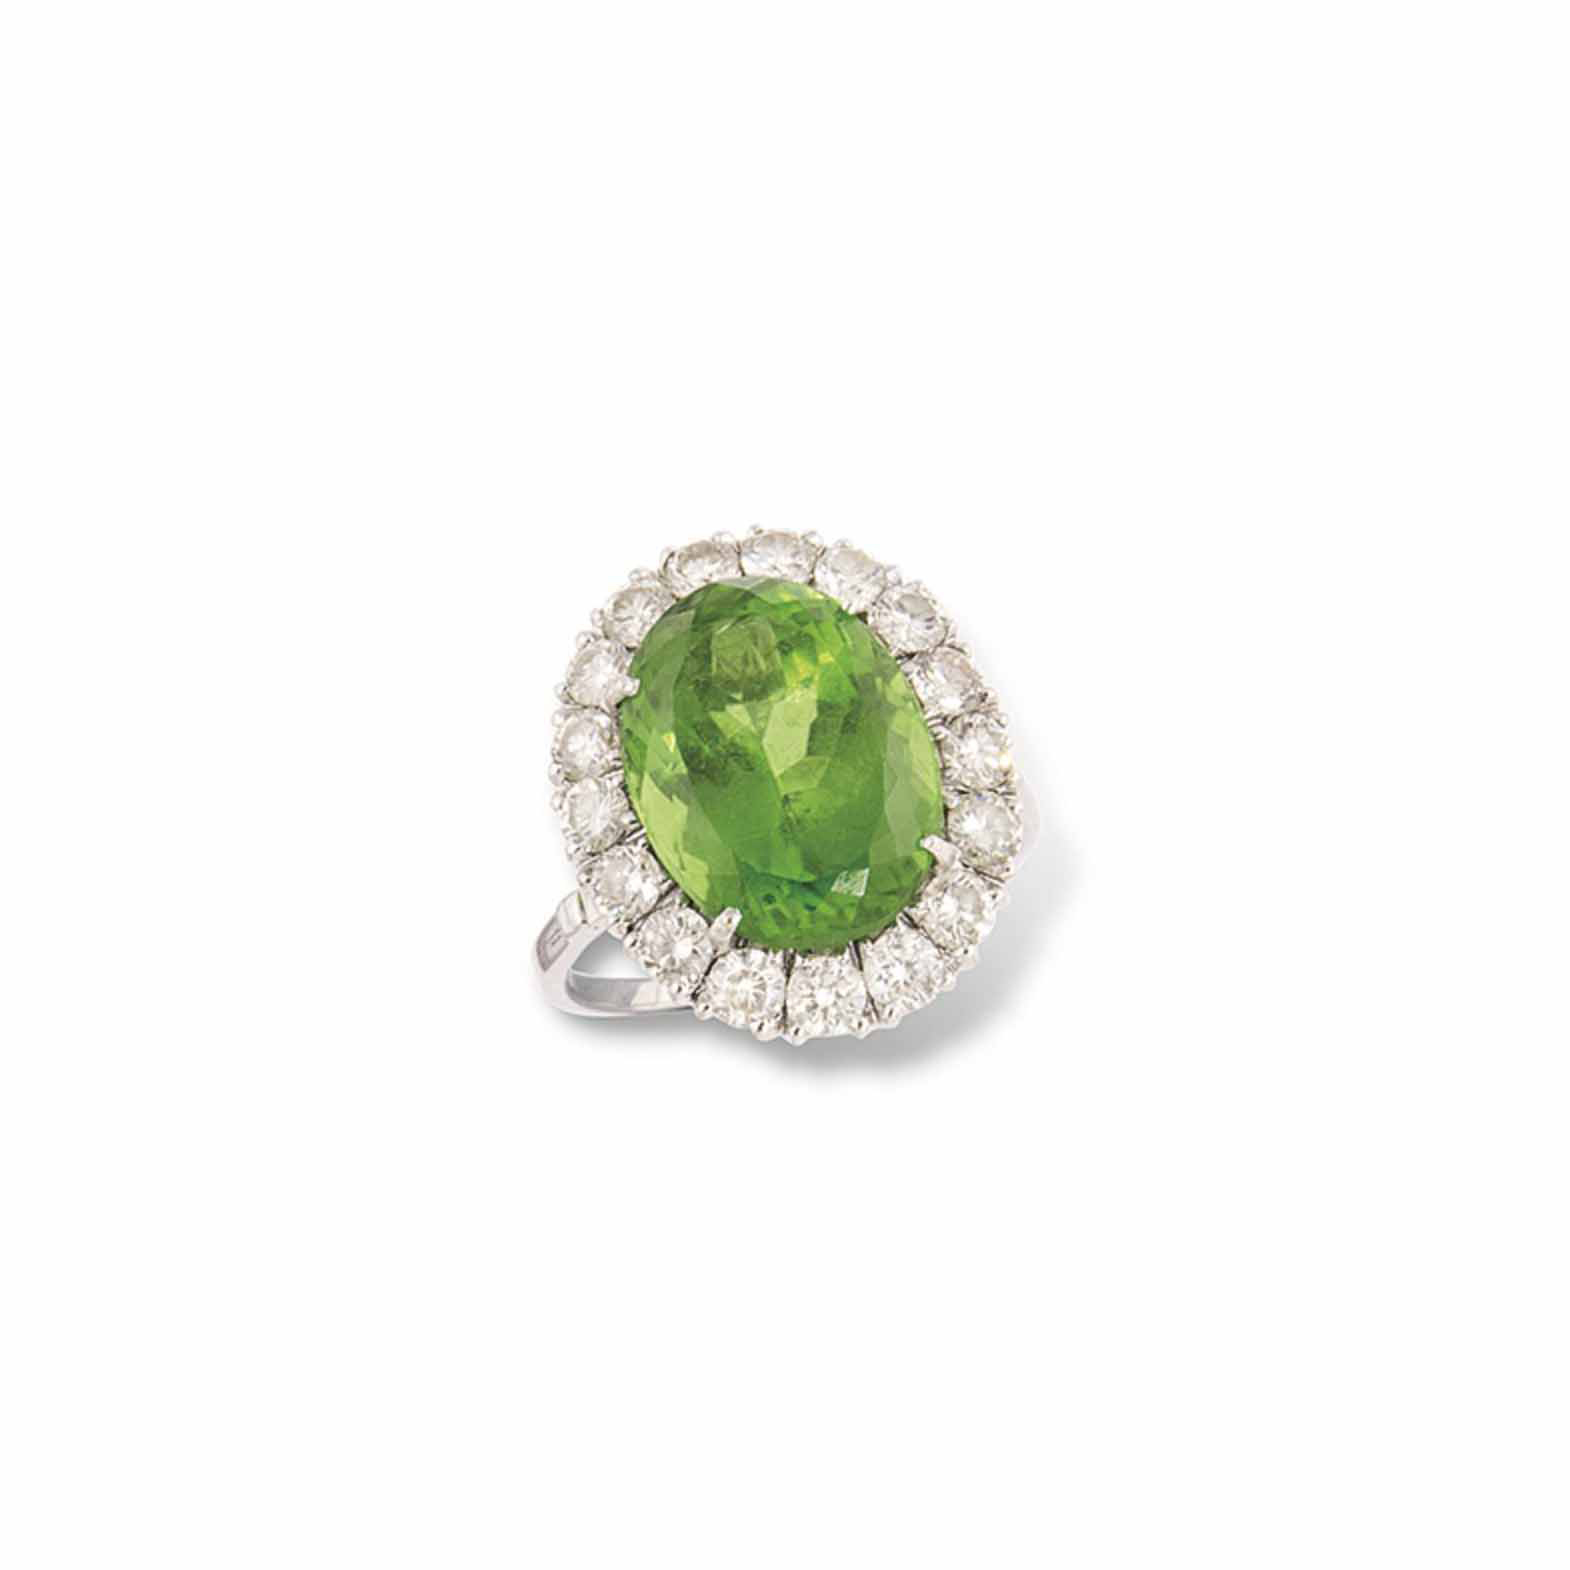 AN 18CT WHITE GOLD PERIDOT AND